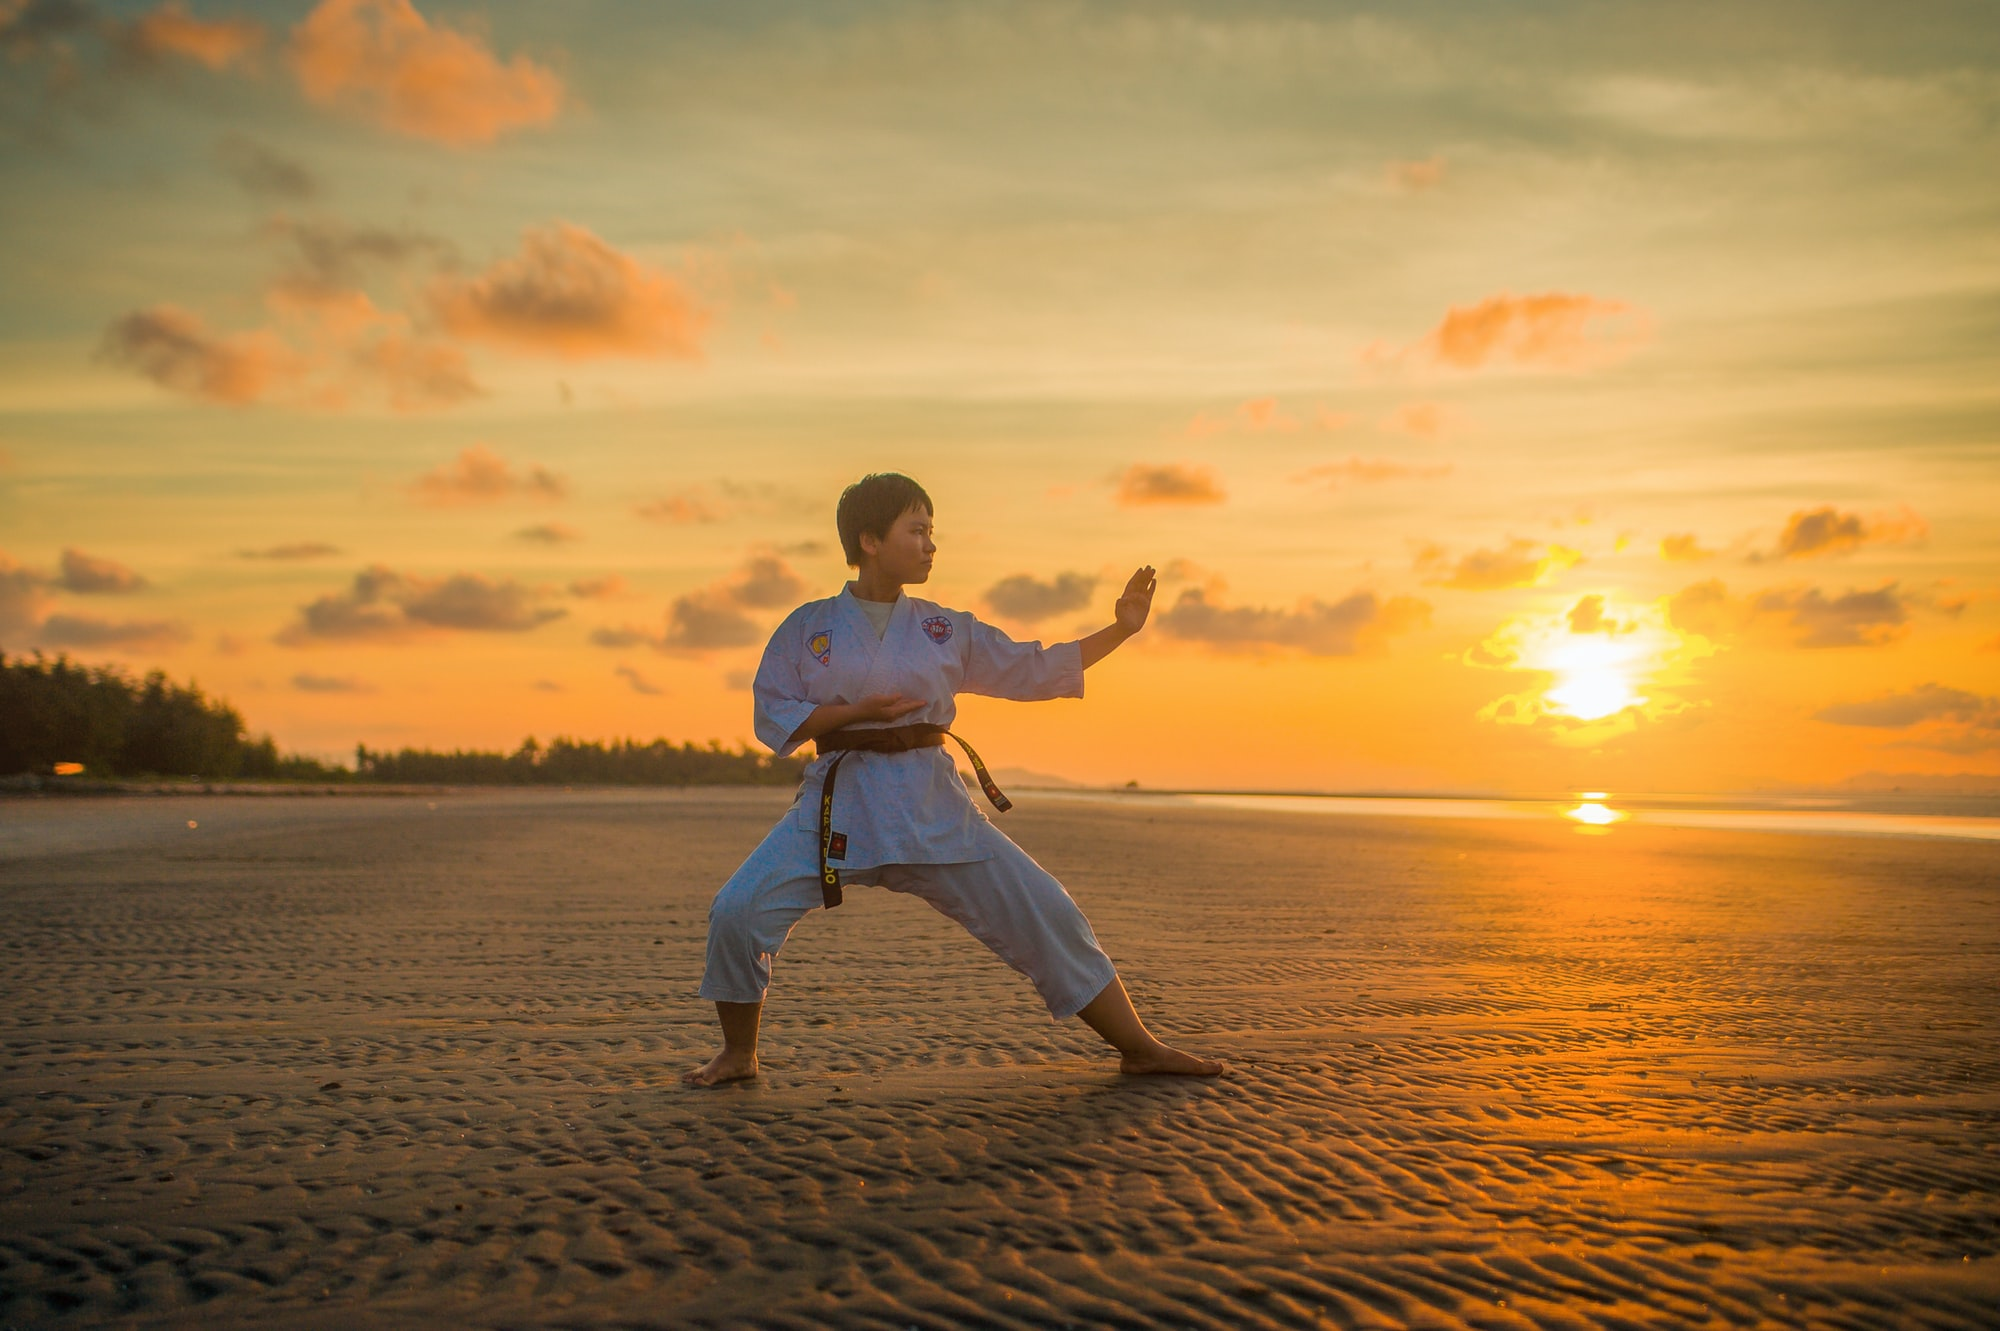 Is Karate a Vehicle for Philosophy?